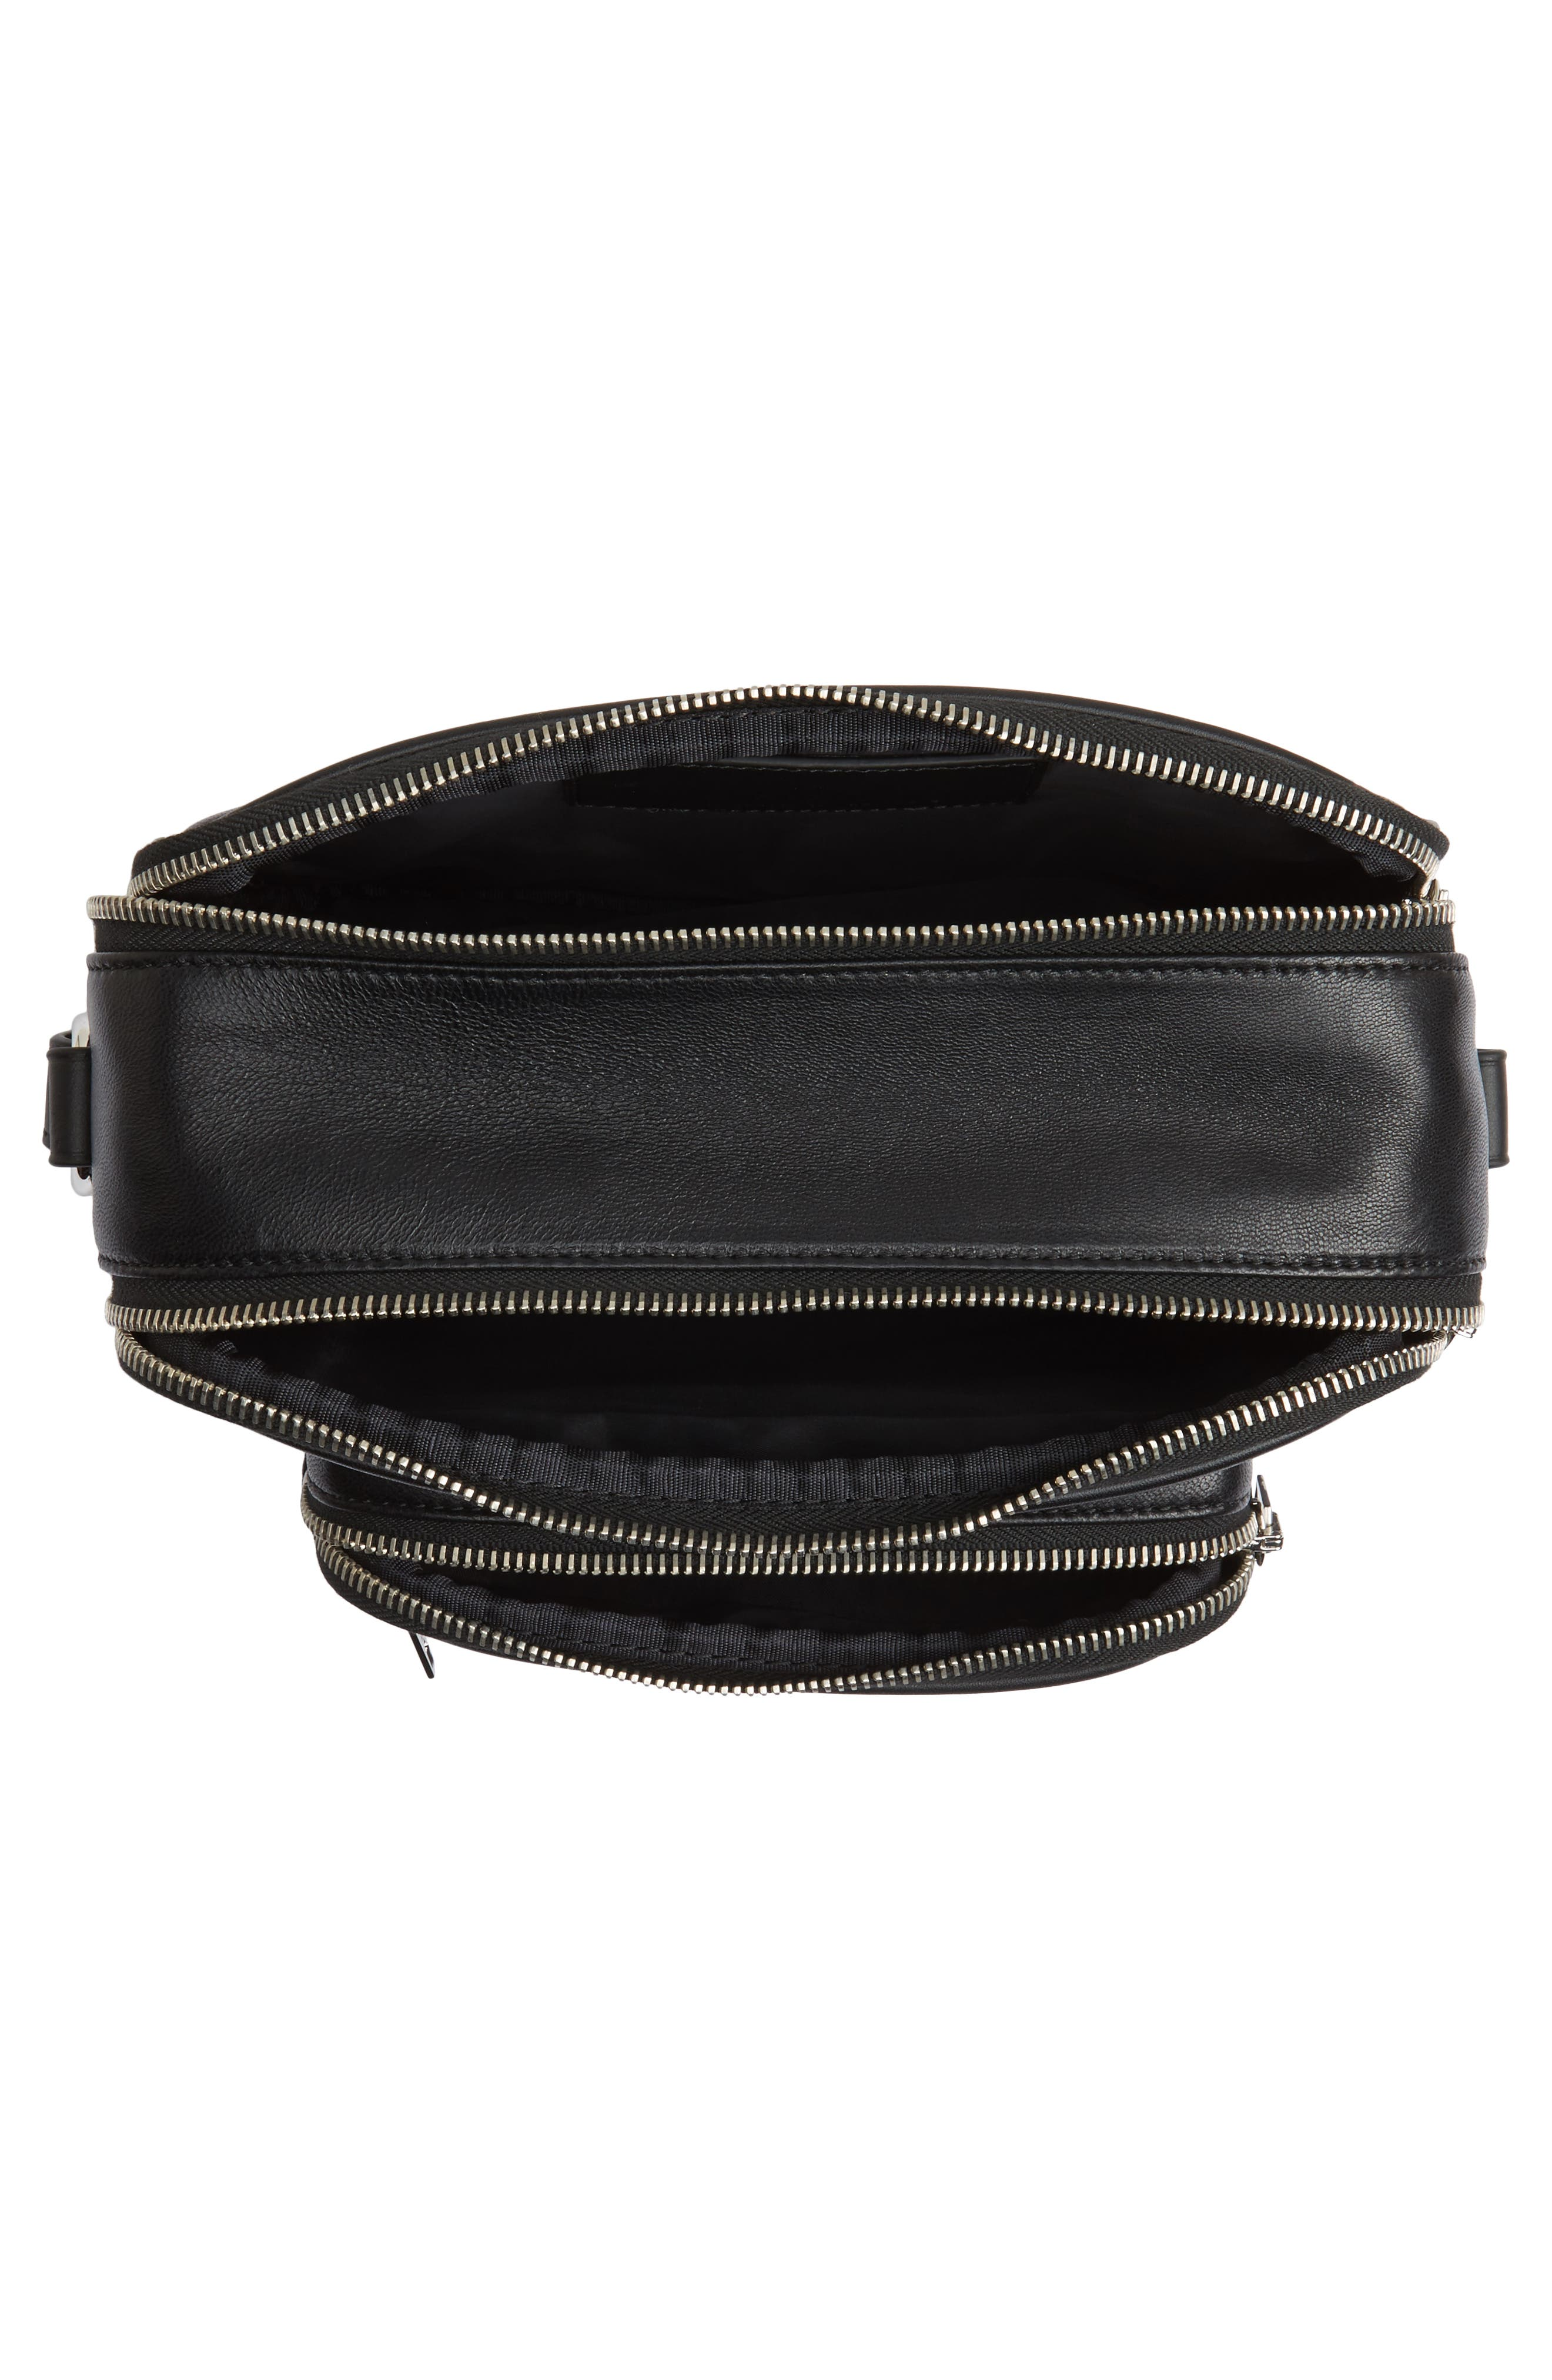 Washed Leather Crossbody Bag,                             Alternate thumbnail 4, color,                             BLACK